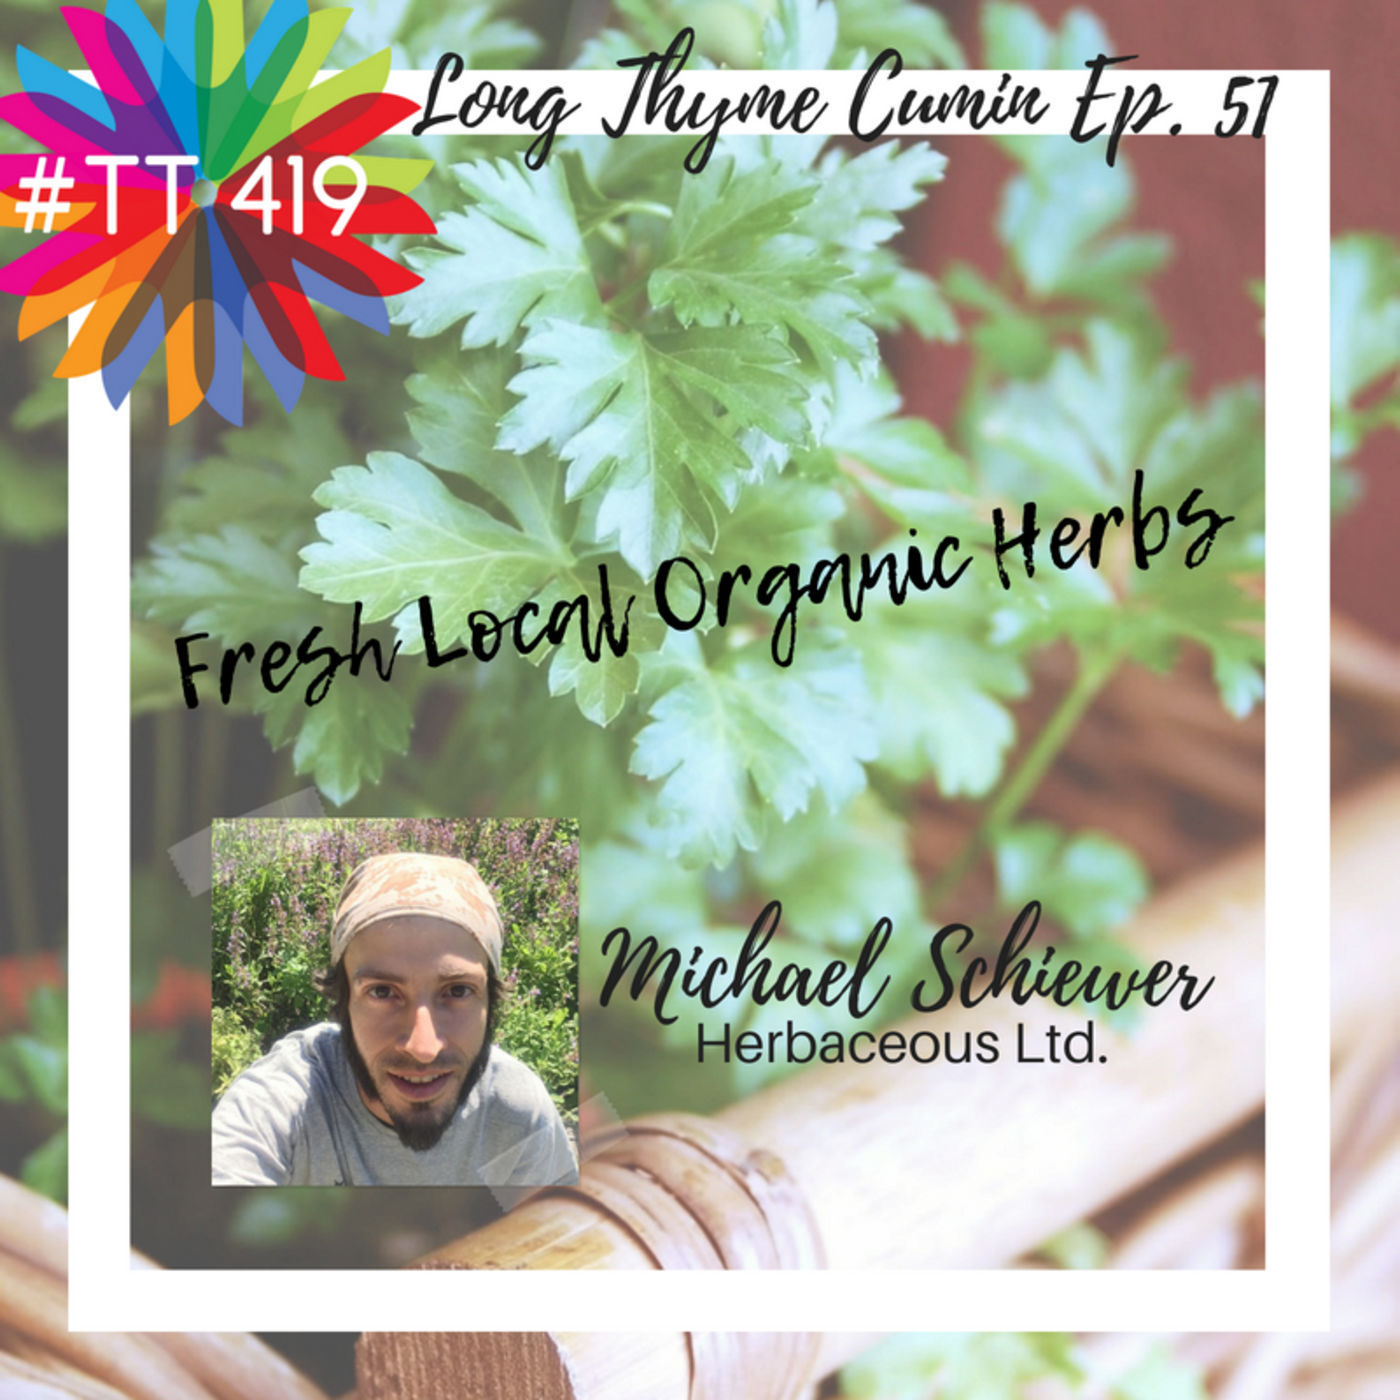 This Postage Stamp Farm was a Long Thyme Cumin, w/ Michael Schiewer, Ep. 51